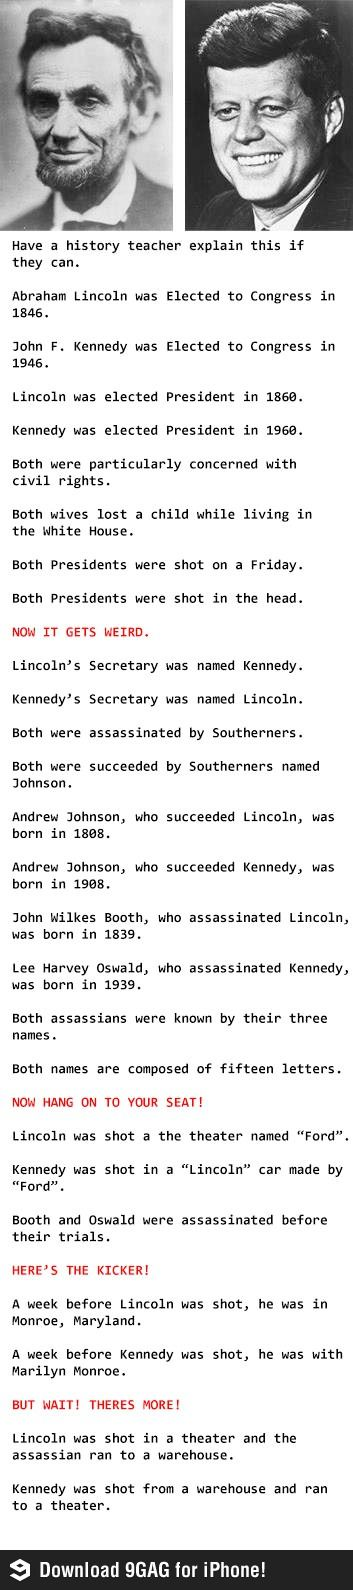 Holy Crap!!! History random facts are fun :)